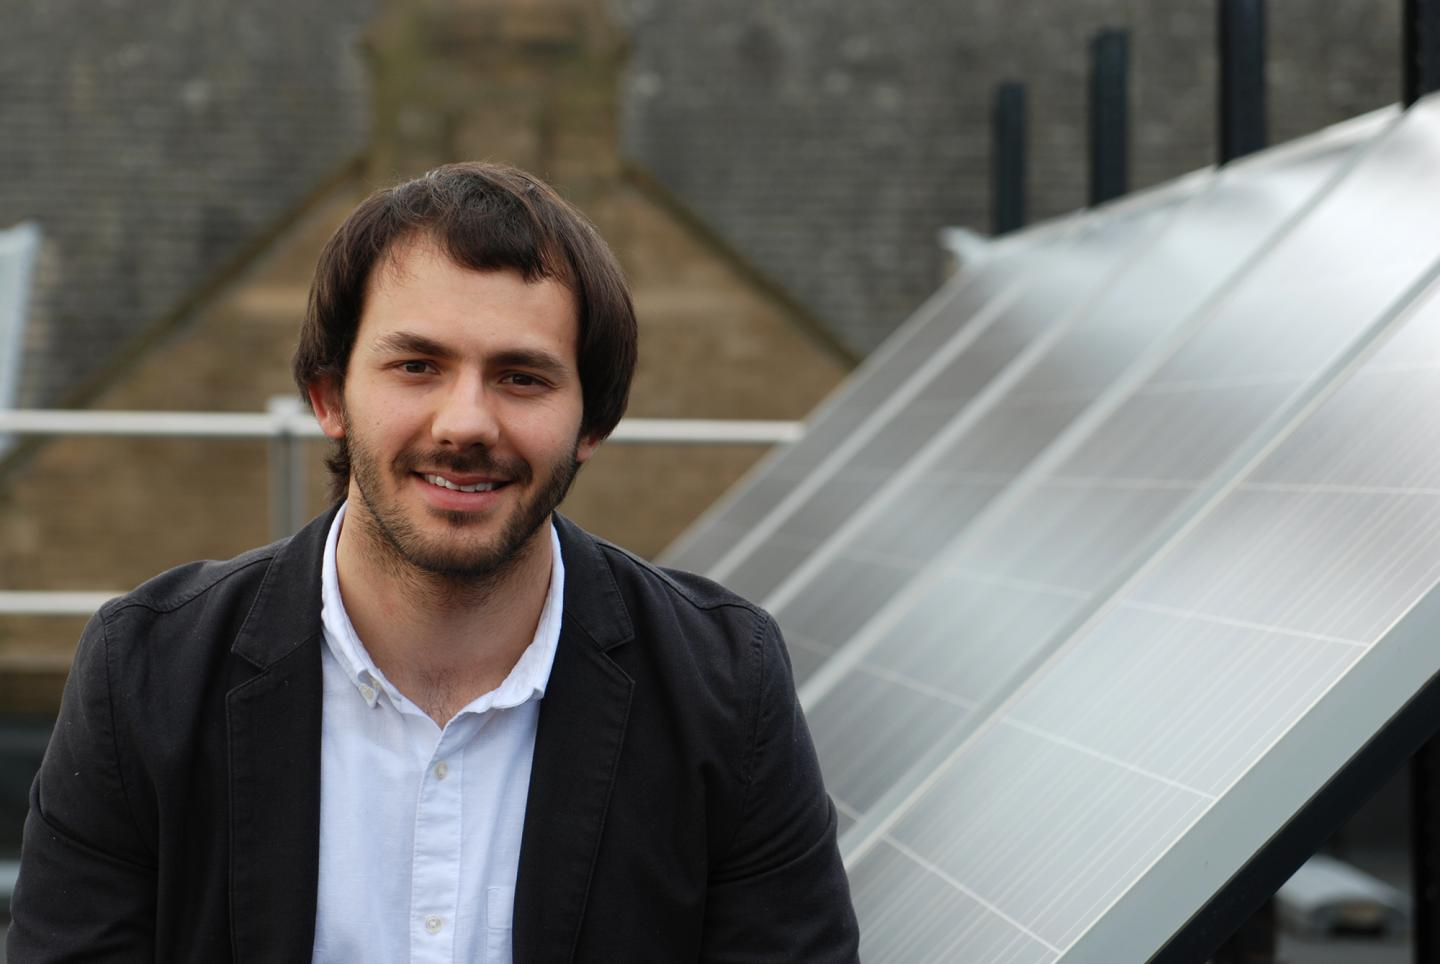 New Technology Will Enable Properties to Share Solar Energy